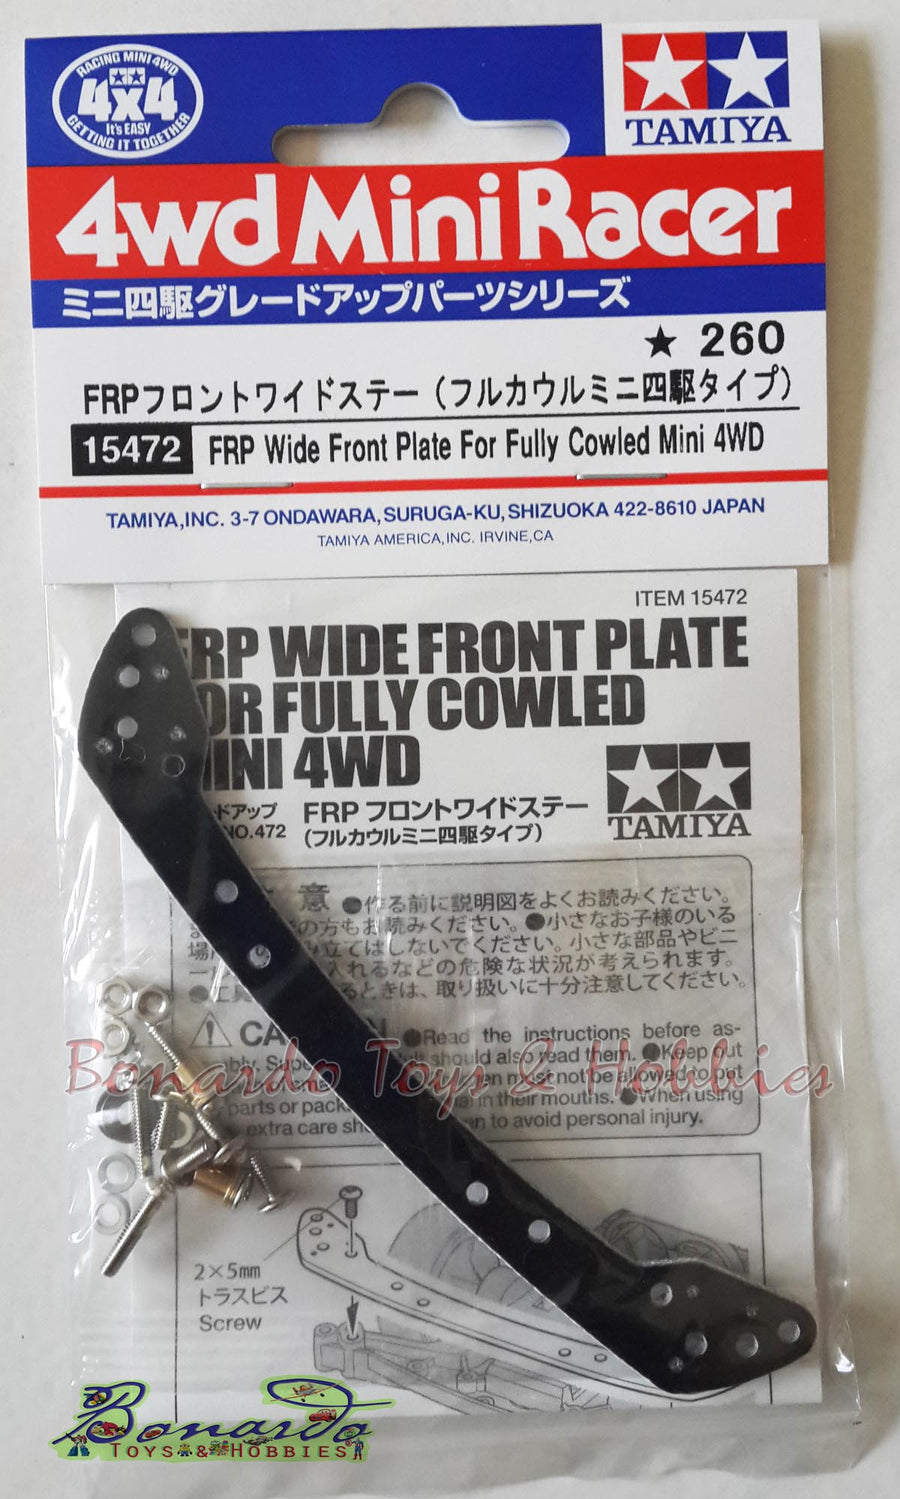 FRP Wide Front Plate for Fully Cowled Mini 4WD